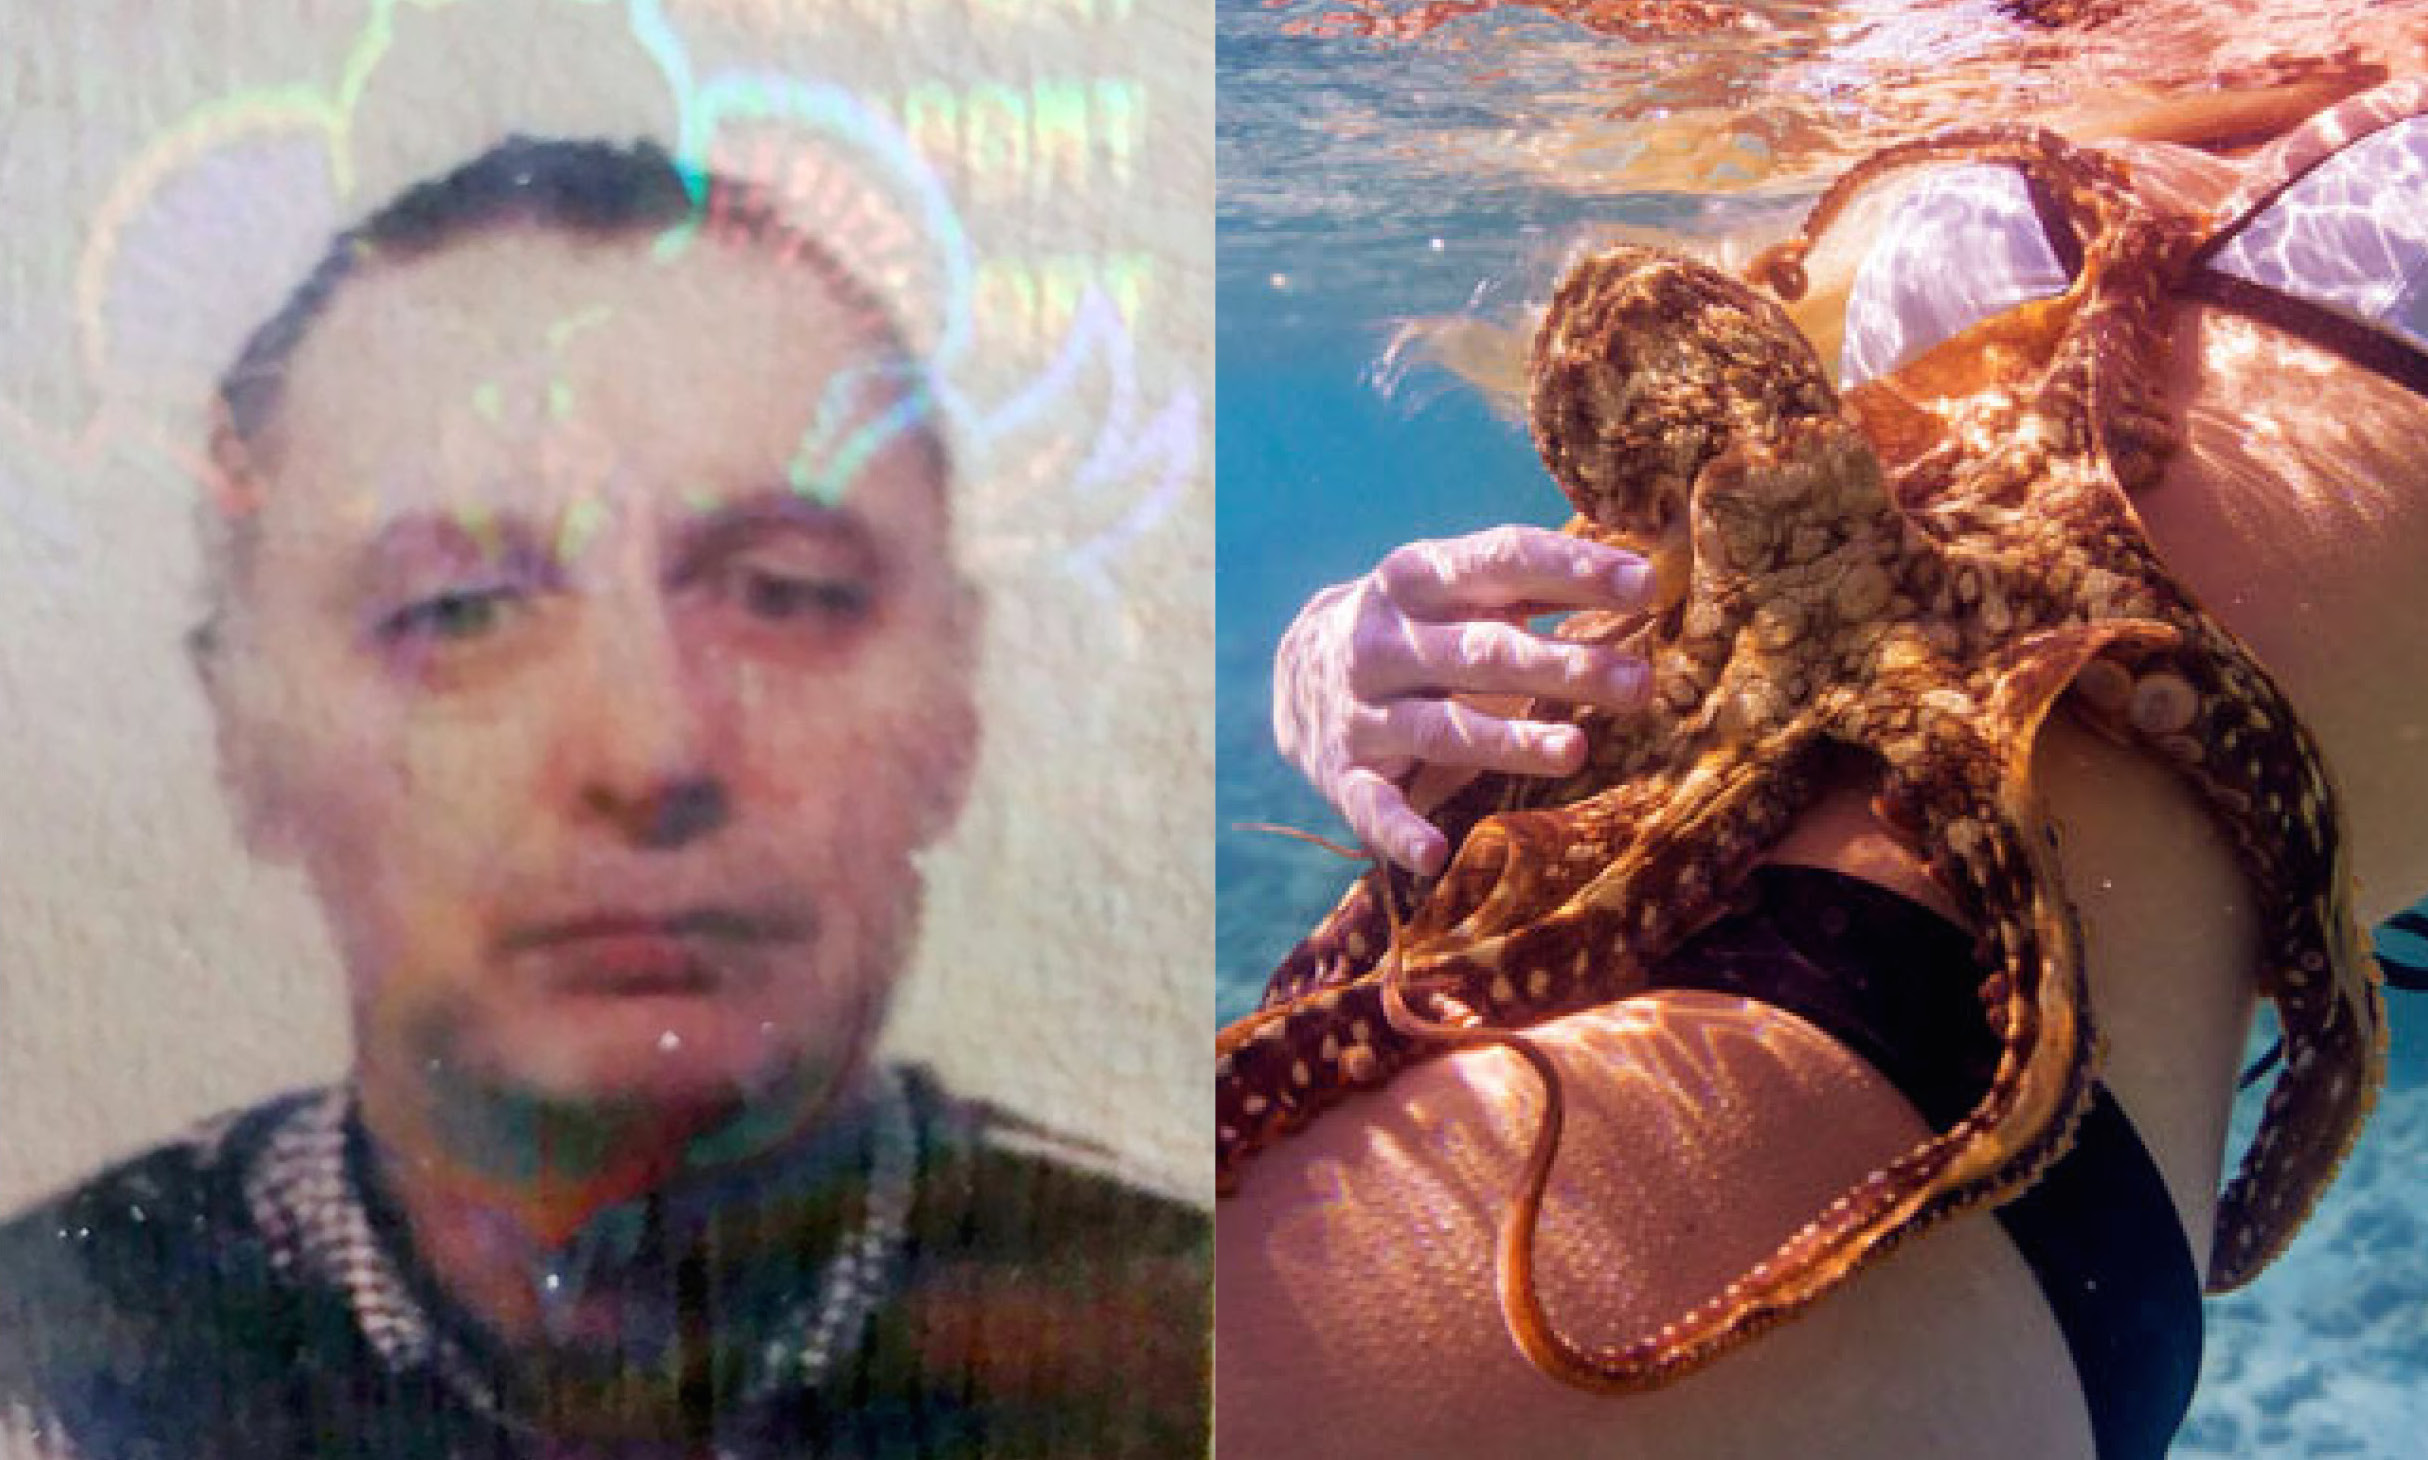 Animal Porn With A Man this man caught with extreme octopus and child porn has been